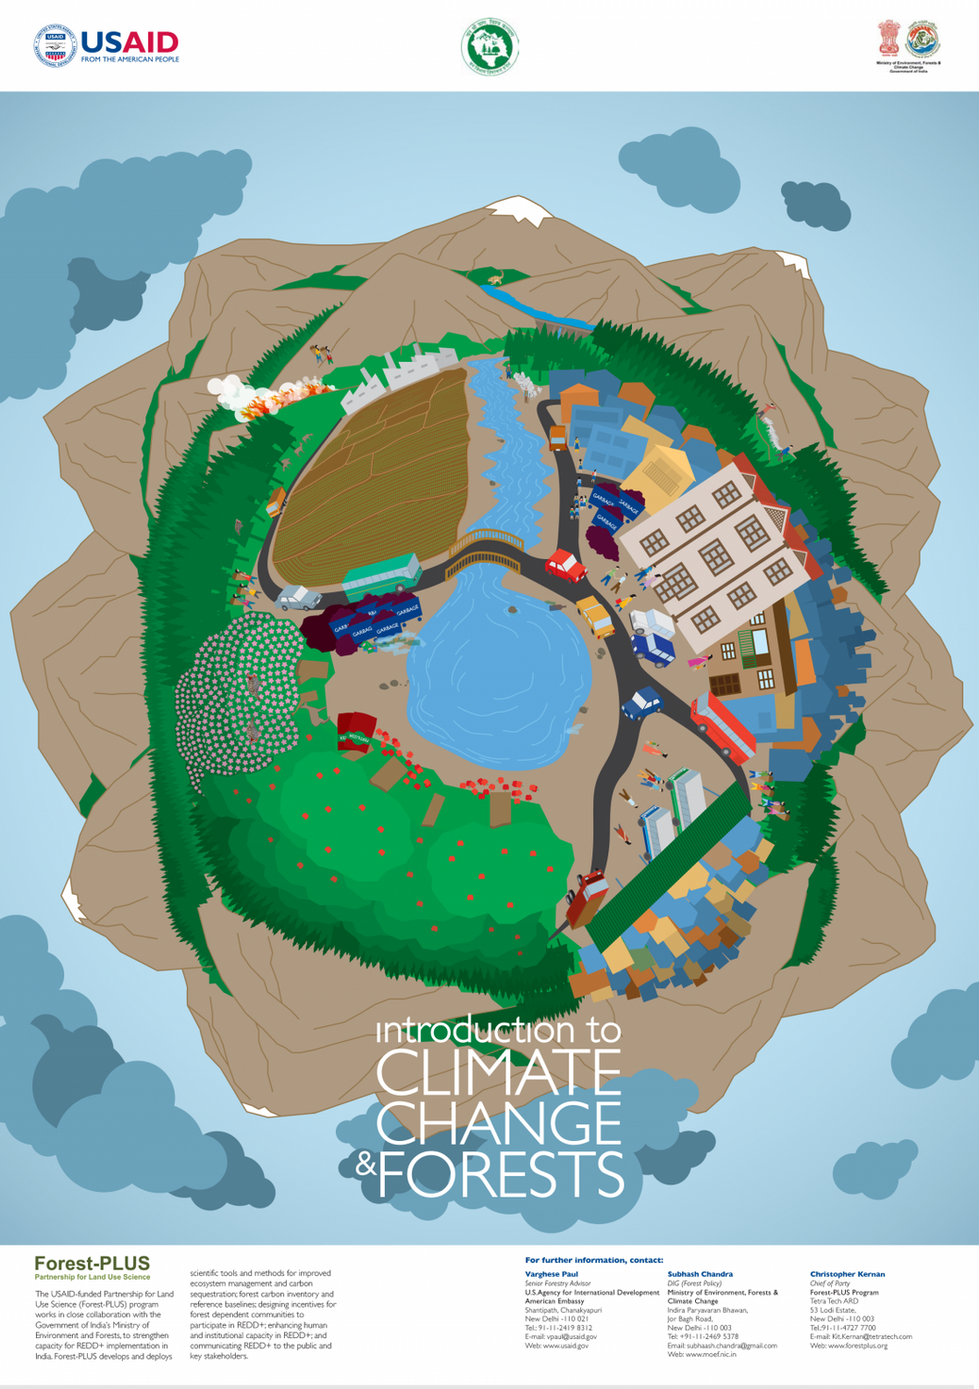 POSTER 2 - CLIMATE CHANGE AND FORESTS:  The second poster shows the same landscape, but with the addition of urbanisation and resultant deforestation. We replace a large part of the forest with a town full of people, buildings and vehicles. The mountains have lost a lot of its snow and become brown. The river has a dam built on it, garbage is seen everywhere and the animals have been pushed further into the mountains. A very visible change is the decrease in the amount of greens and disappearing waterways. Overall it shows the impact of population growth, rampant construction and deforestation as some of the major causes of Climate Change.    The reason to keep the overall landscape and structure the same was to create an immediate visual comparison between the two posters. The questions behind this poster were related to climate change and deforestation.